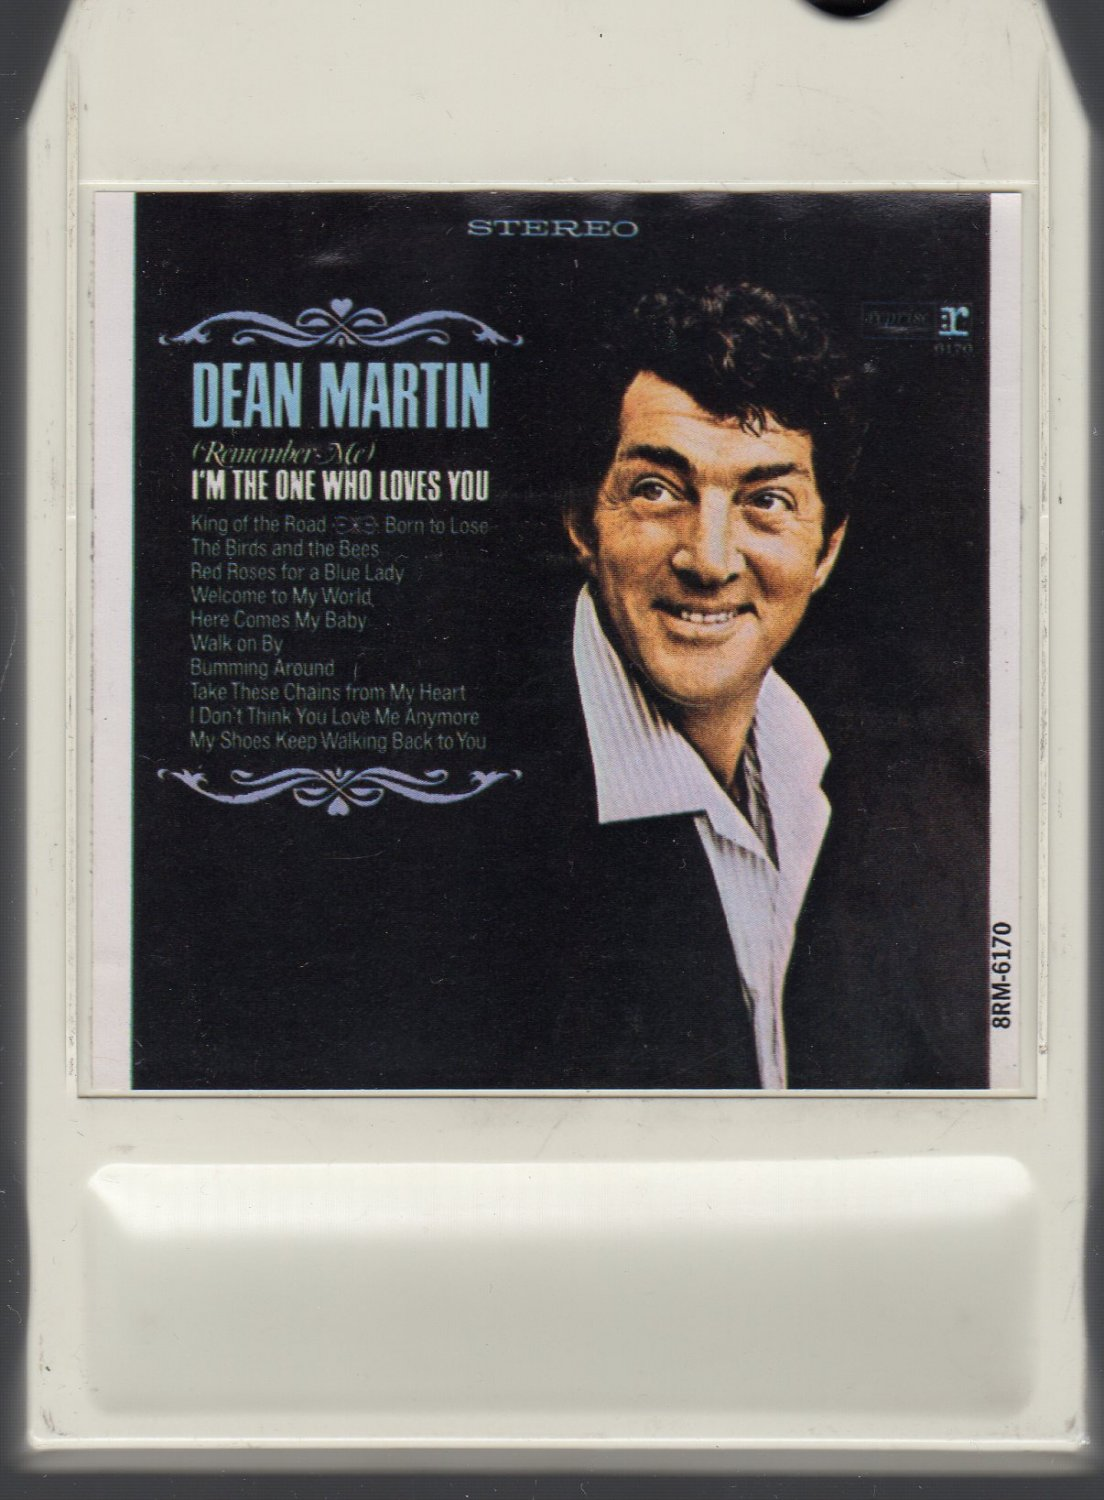 Dean Martin - I'm The One Who Loves You 1965 LEAR Reprise 8-track tape